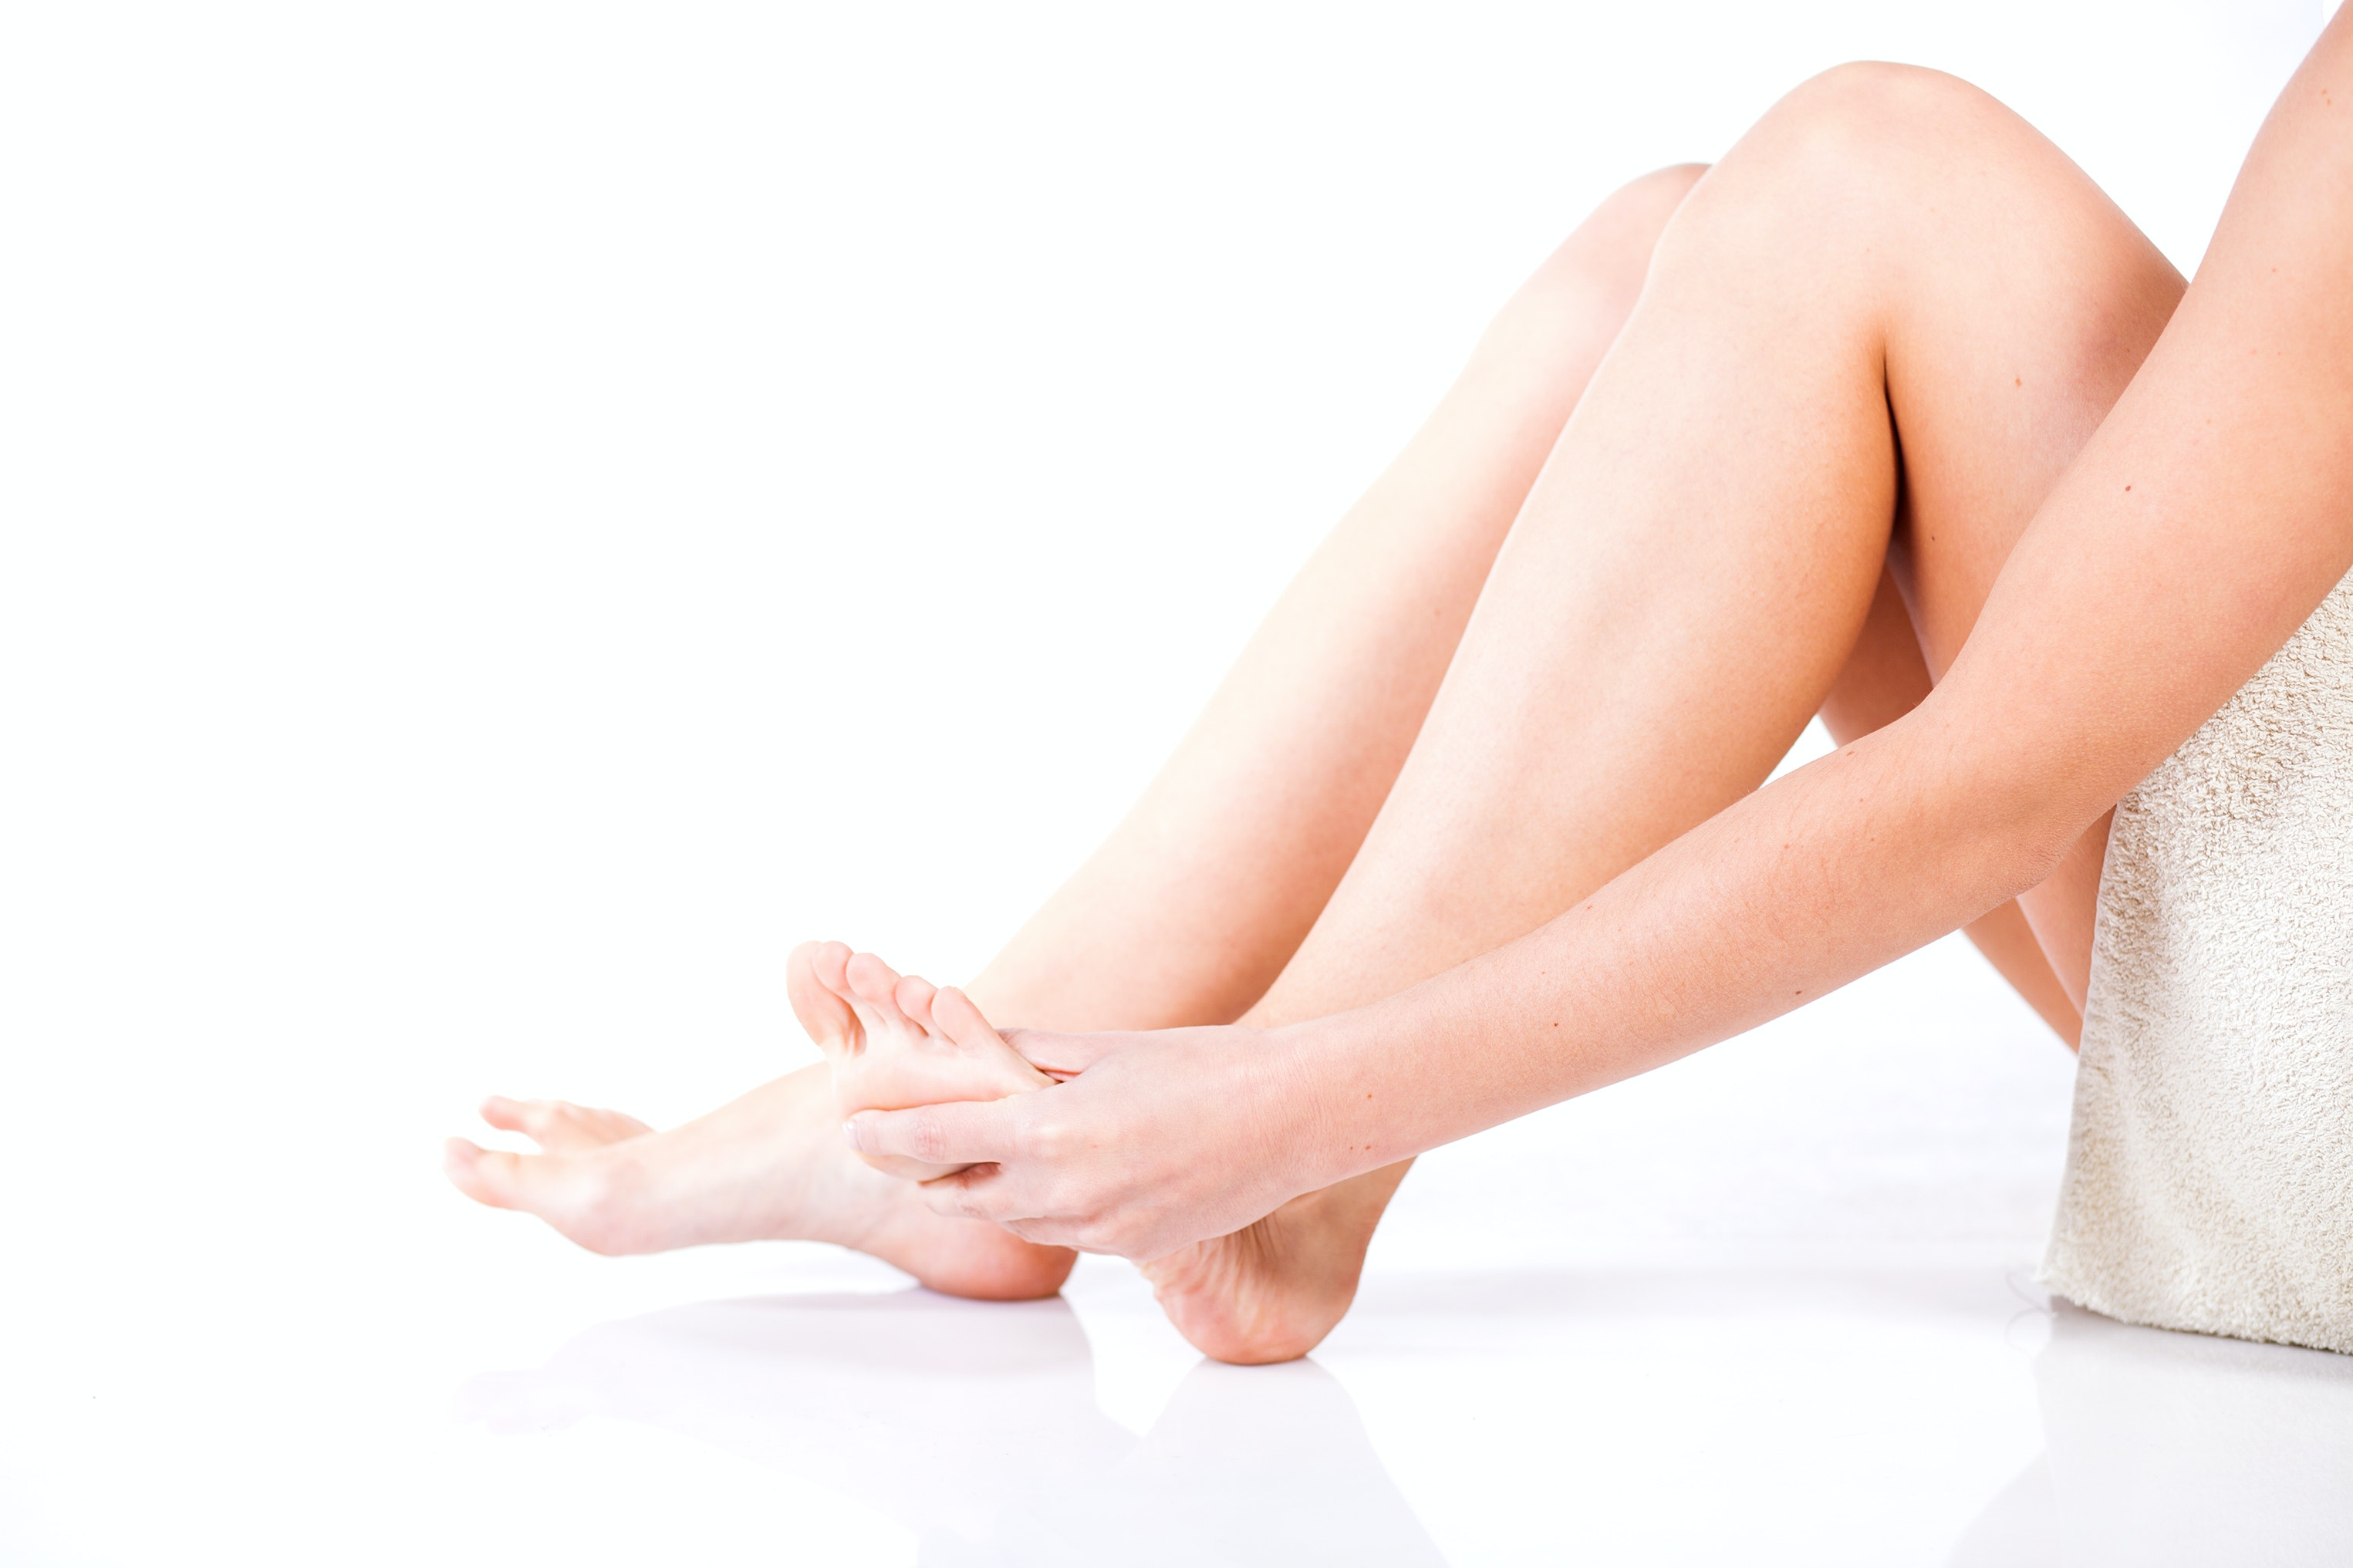 An image depicting a person suffering from toe redness symptoms